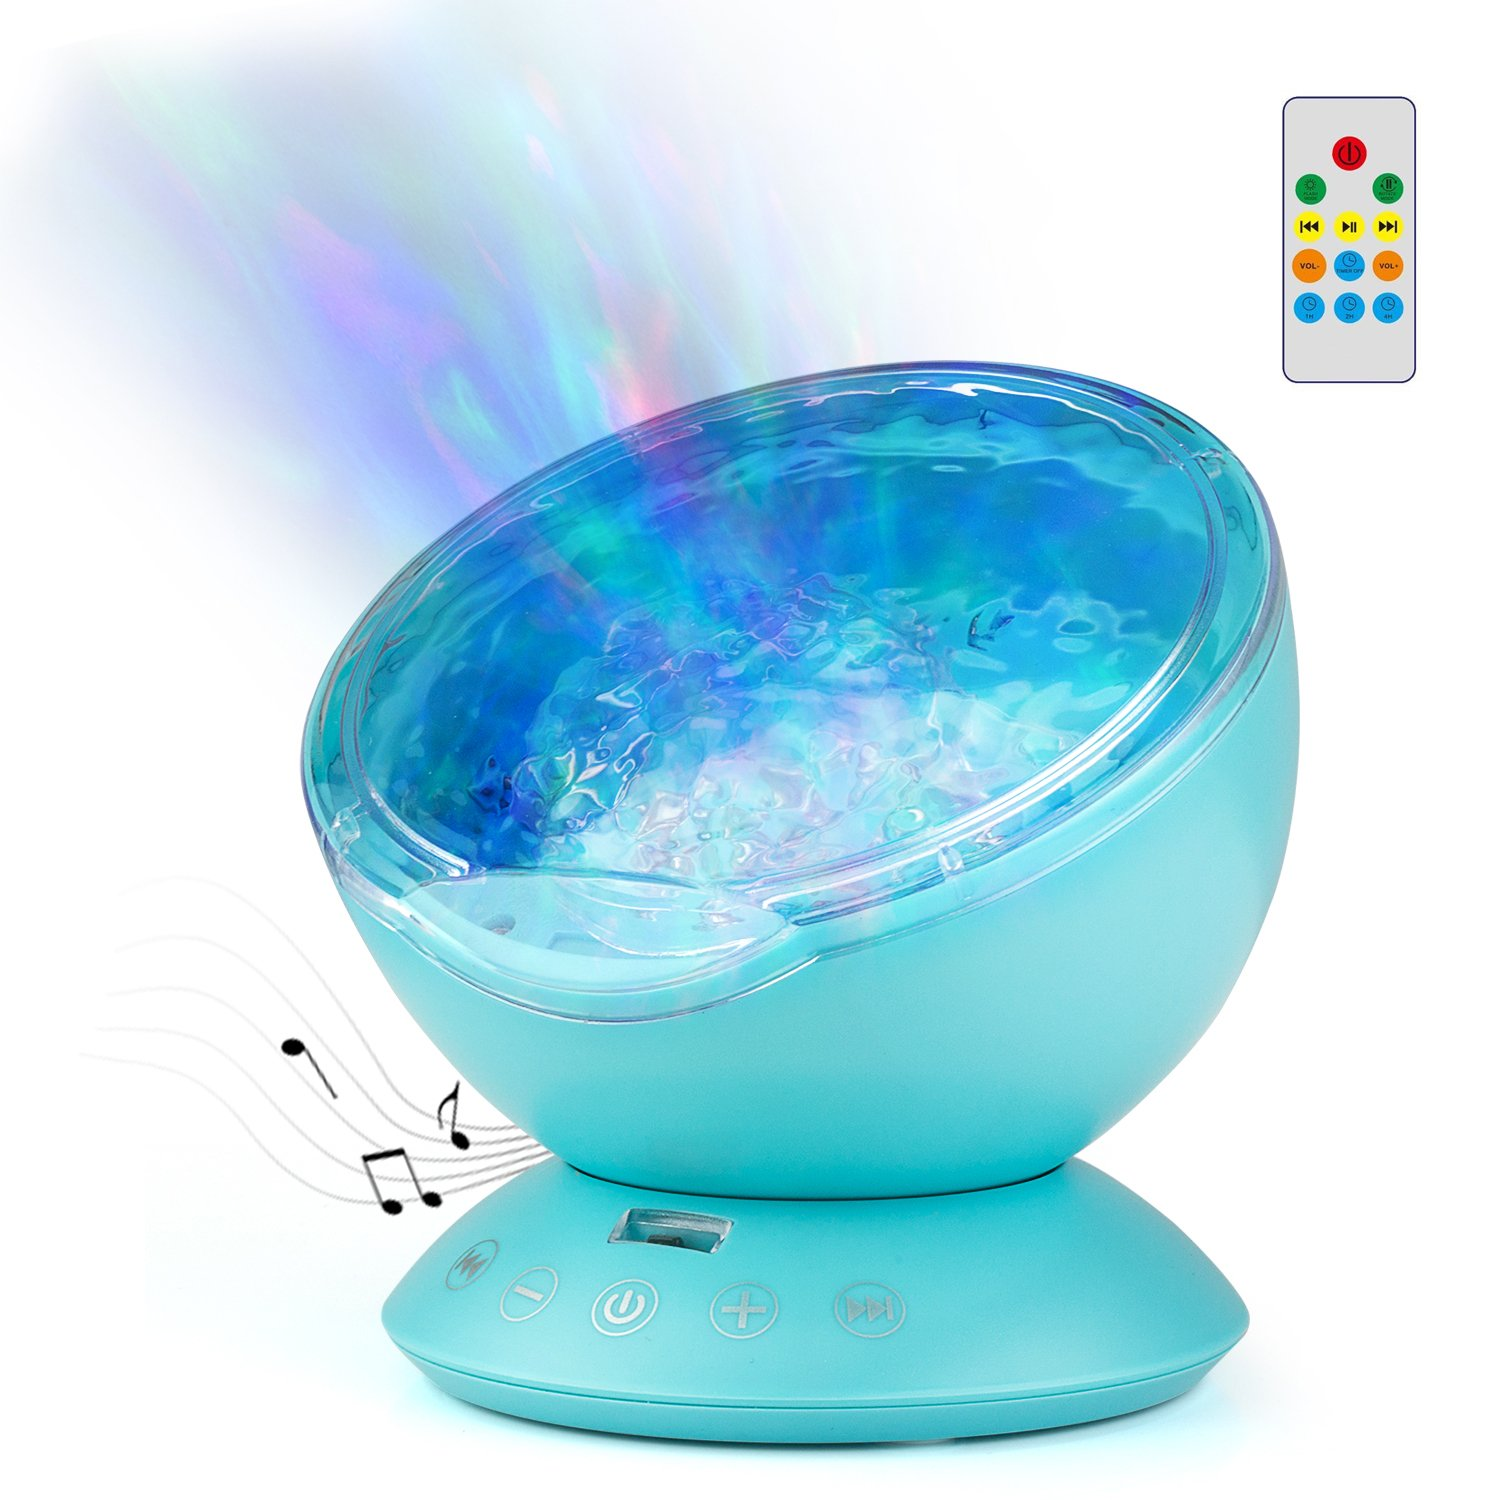 Goline Ocean Wave Projector, Baby Sound Machine Ocean Waves, 7 Year Old Girl Gifts, Projector Nightlight Kids, Remote Control Ocean Wave Projector Night Light, Birthday Gifts for Her/Women/Mom.